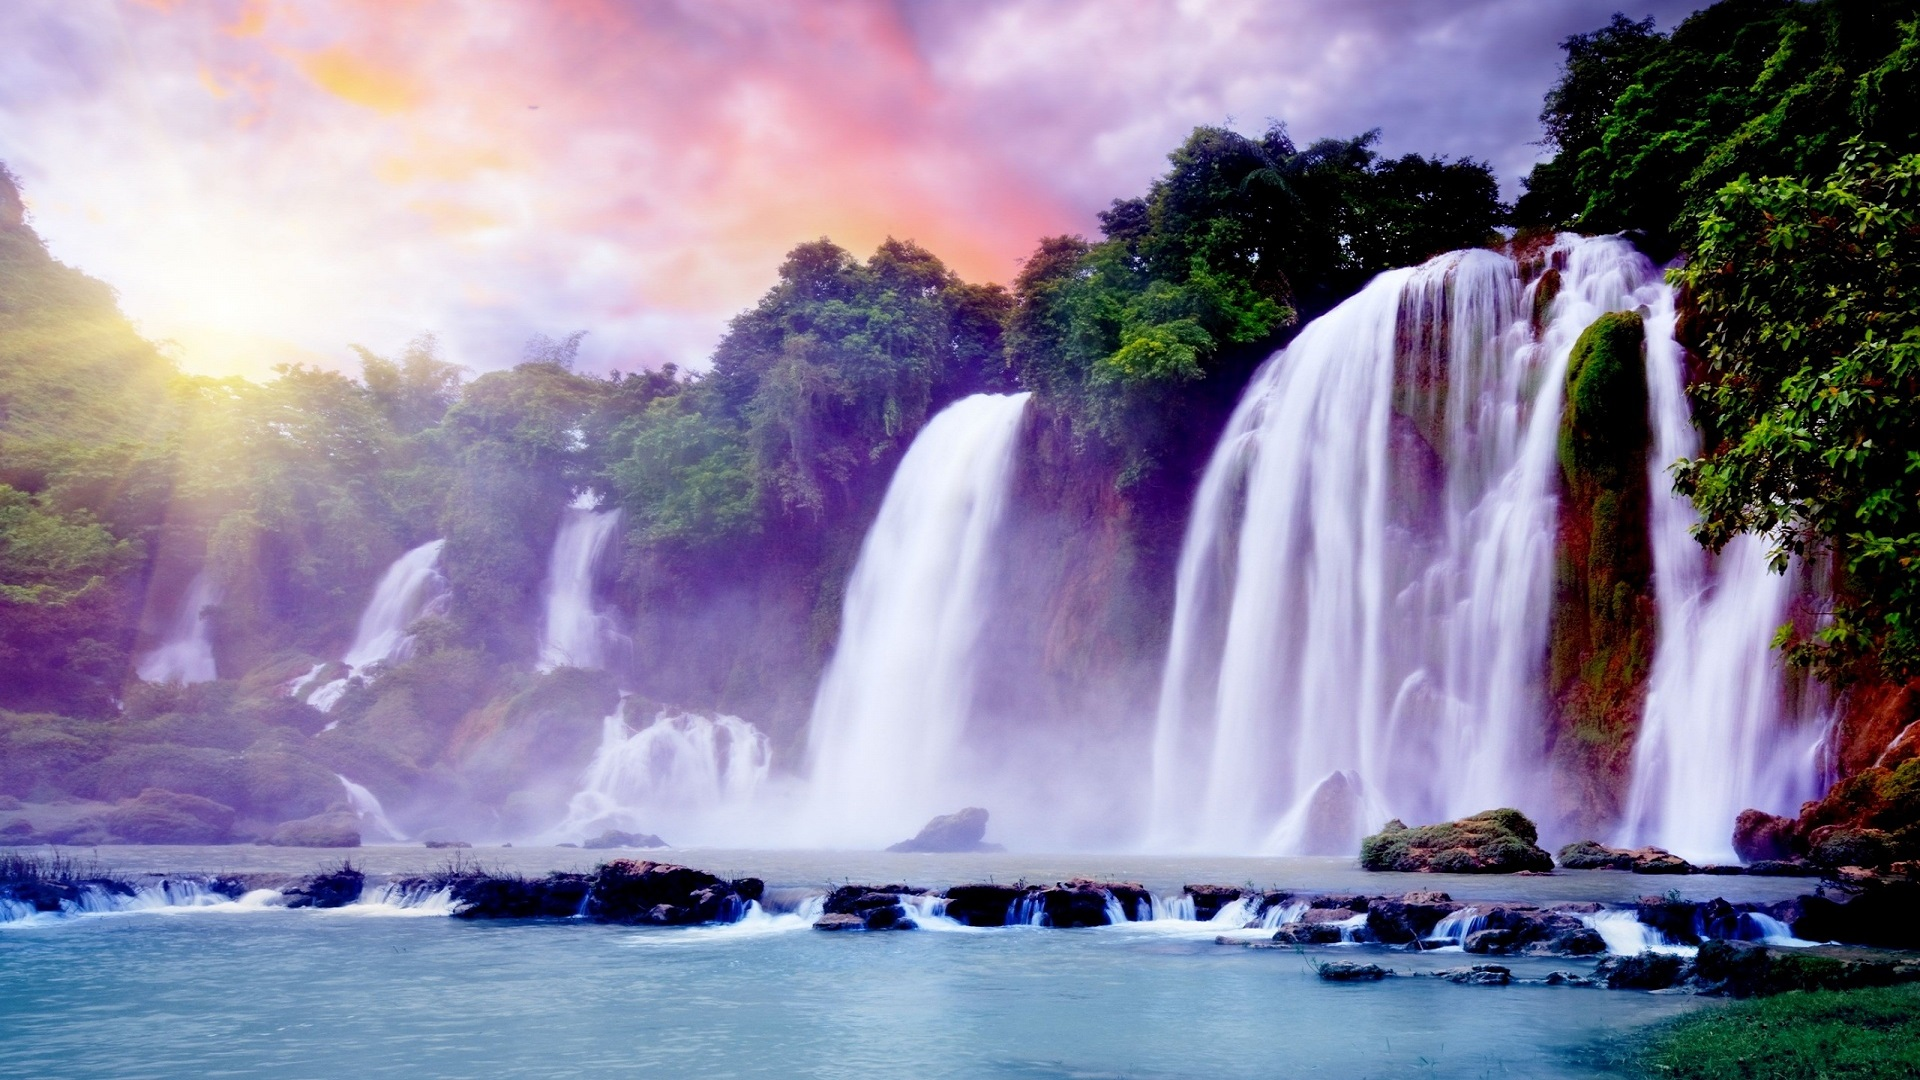 Wallpaper download nice - Nice And Beautiful Waterfalls Hd Wallpapers Free For